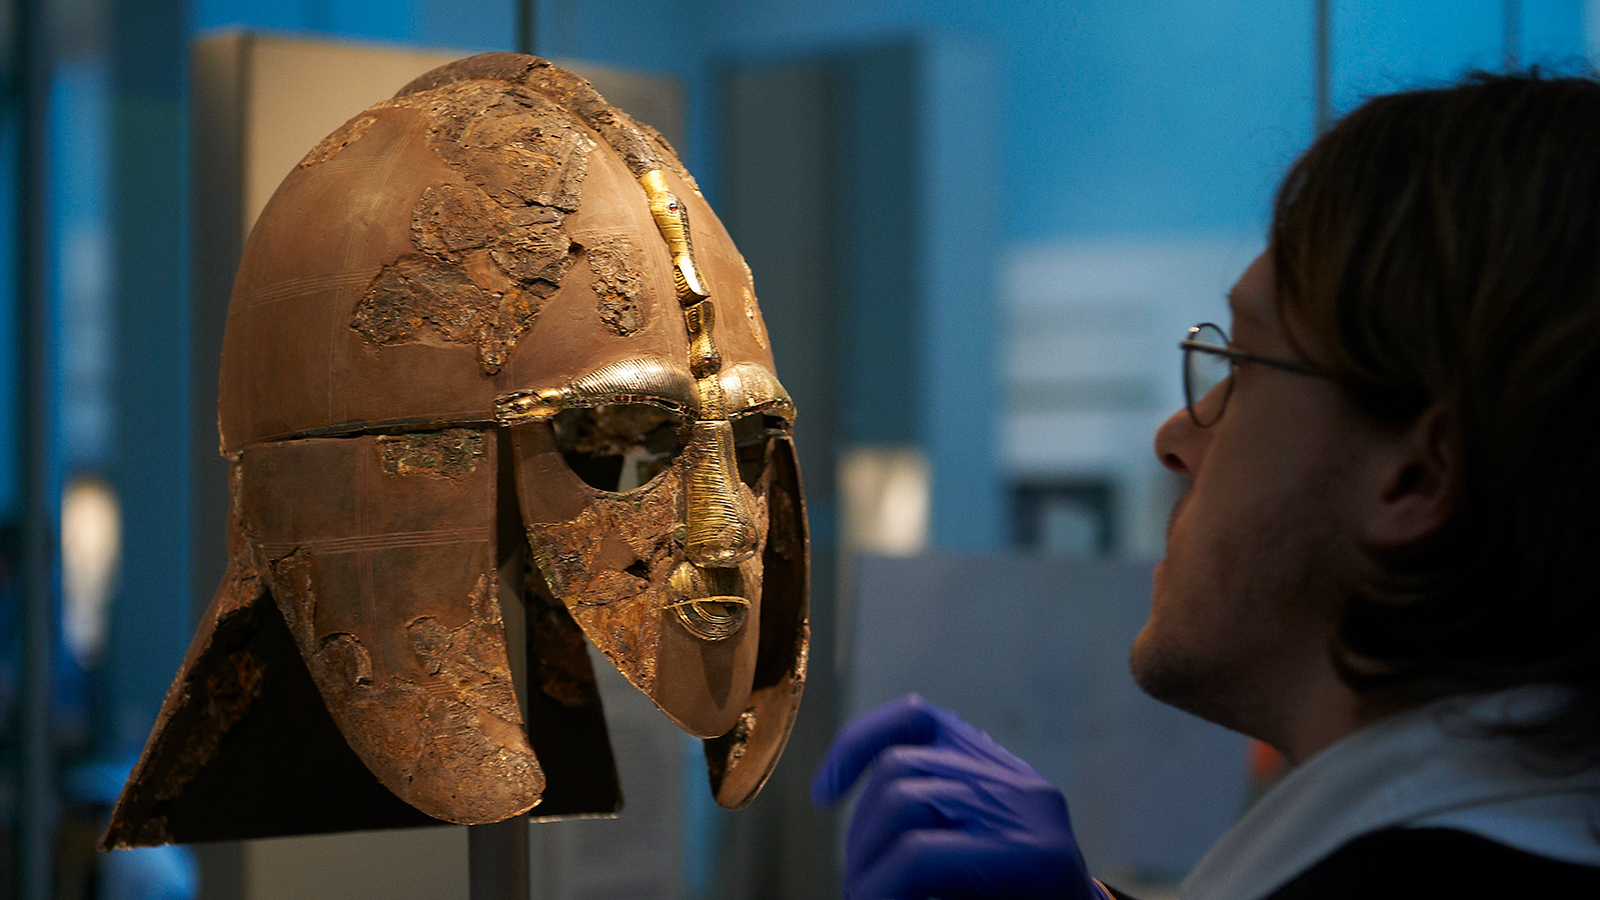 The Sutton Hoo helmet is on display at the British Museum in London